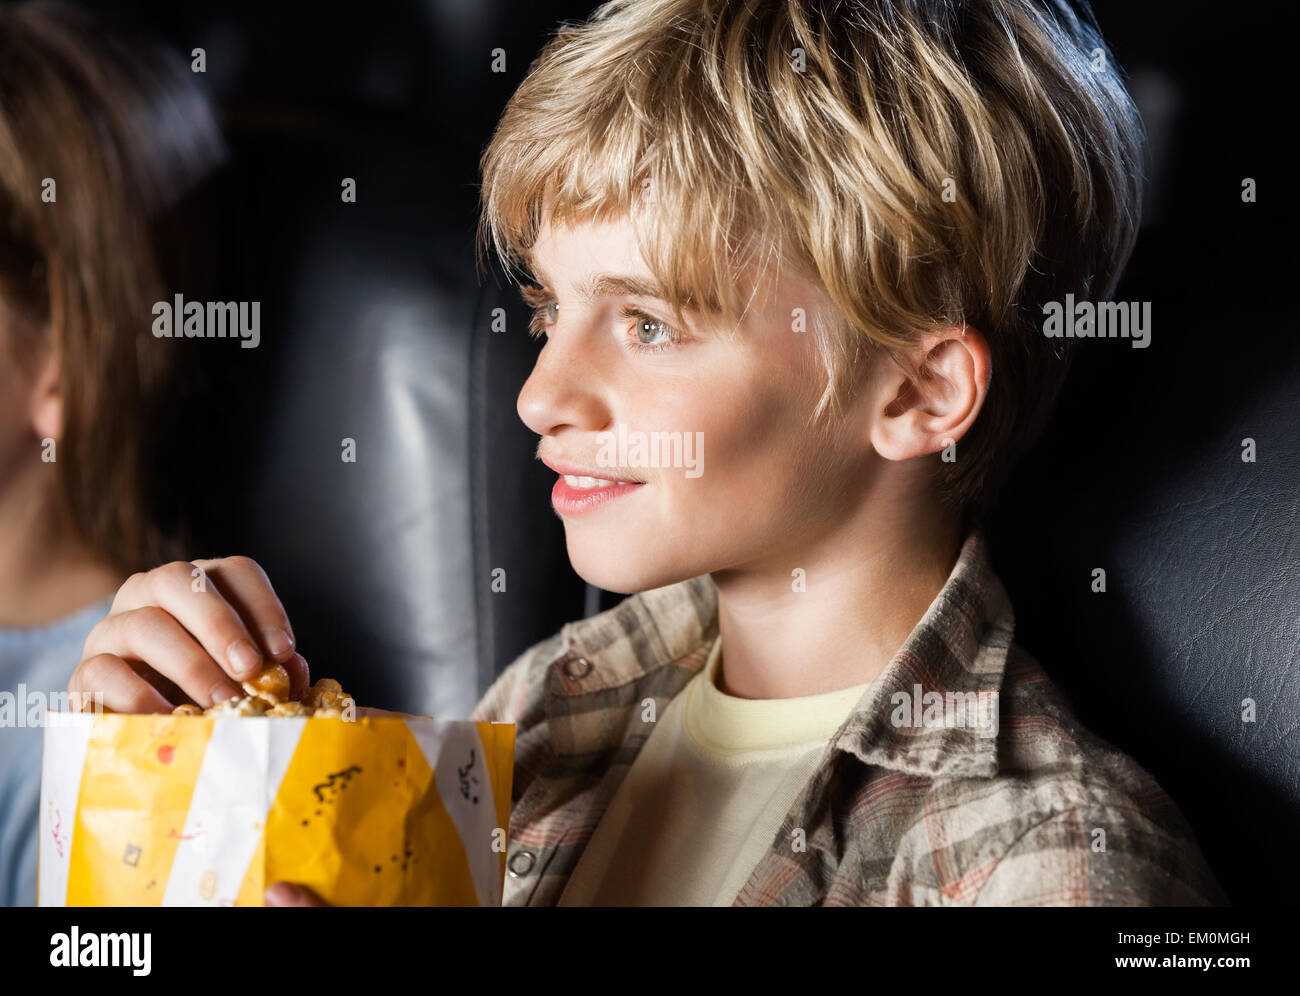 Boy Eating Popcorn While Watching Movie - Stock Image